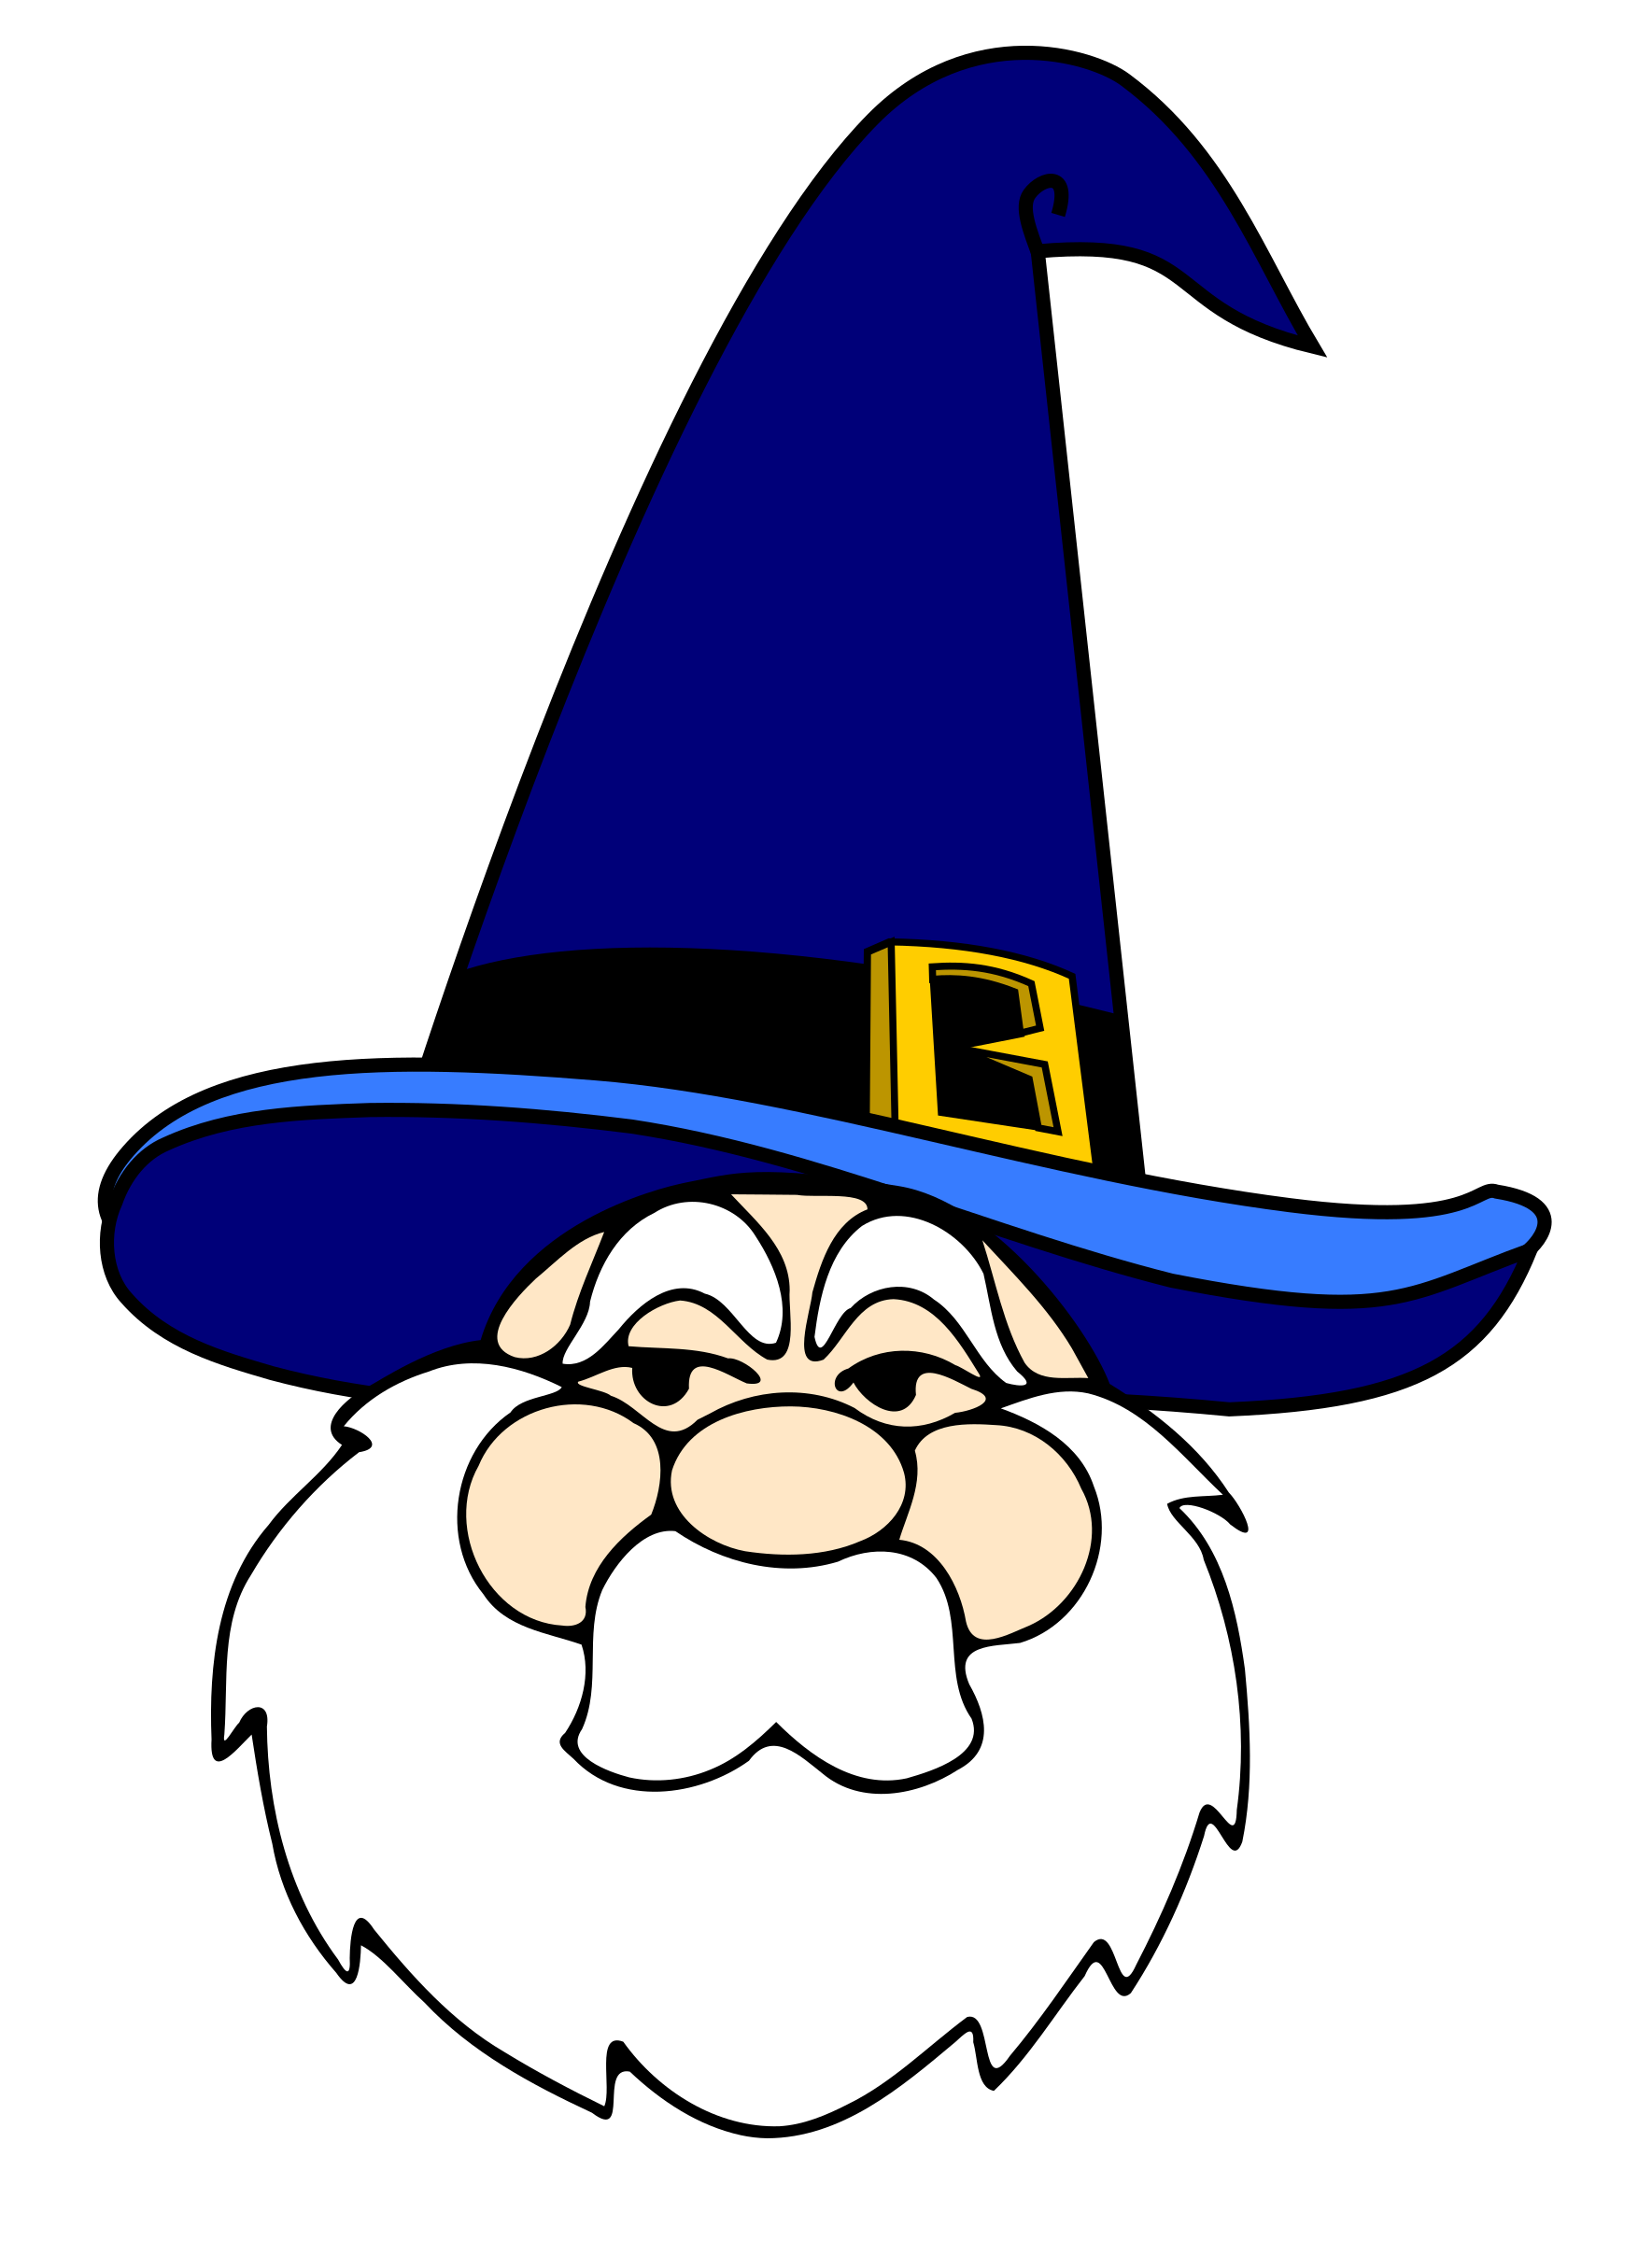 png library stock Microsoft clipart wizzard. Wizard in blue hat.